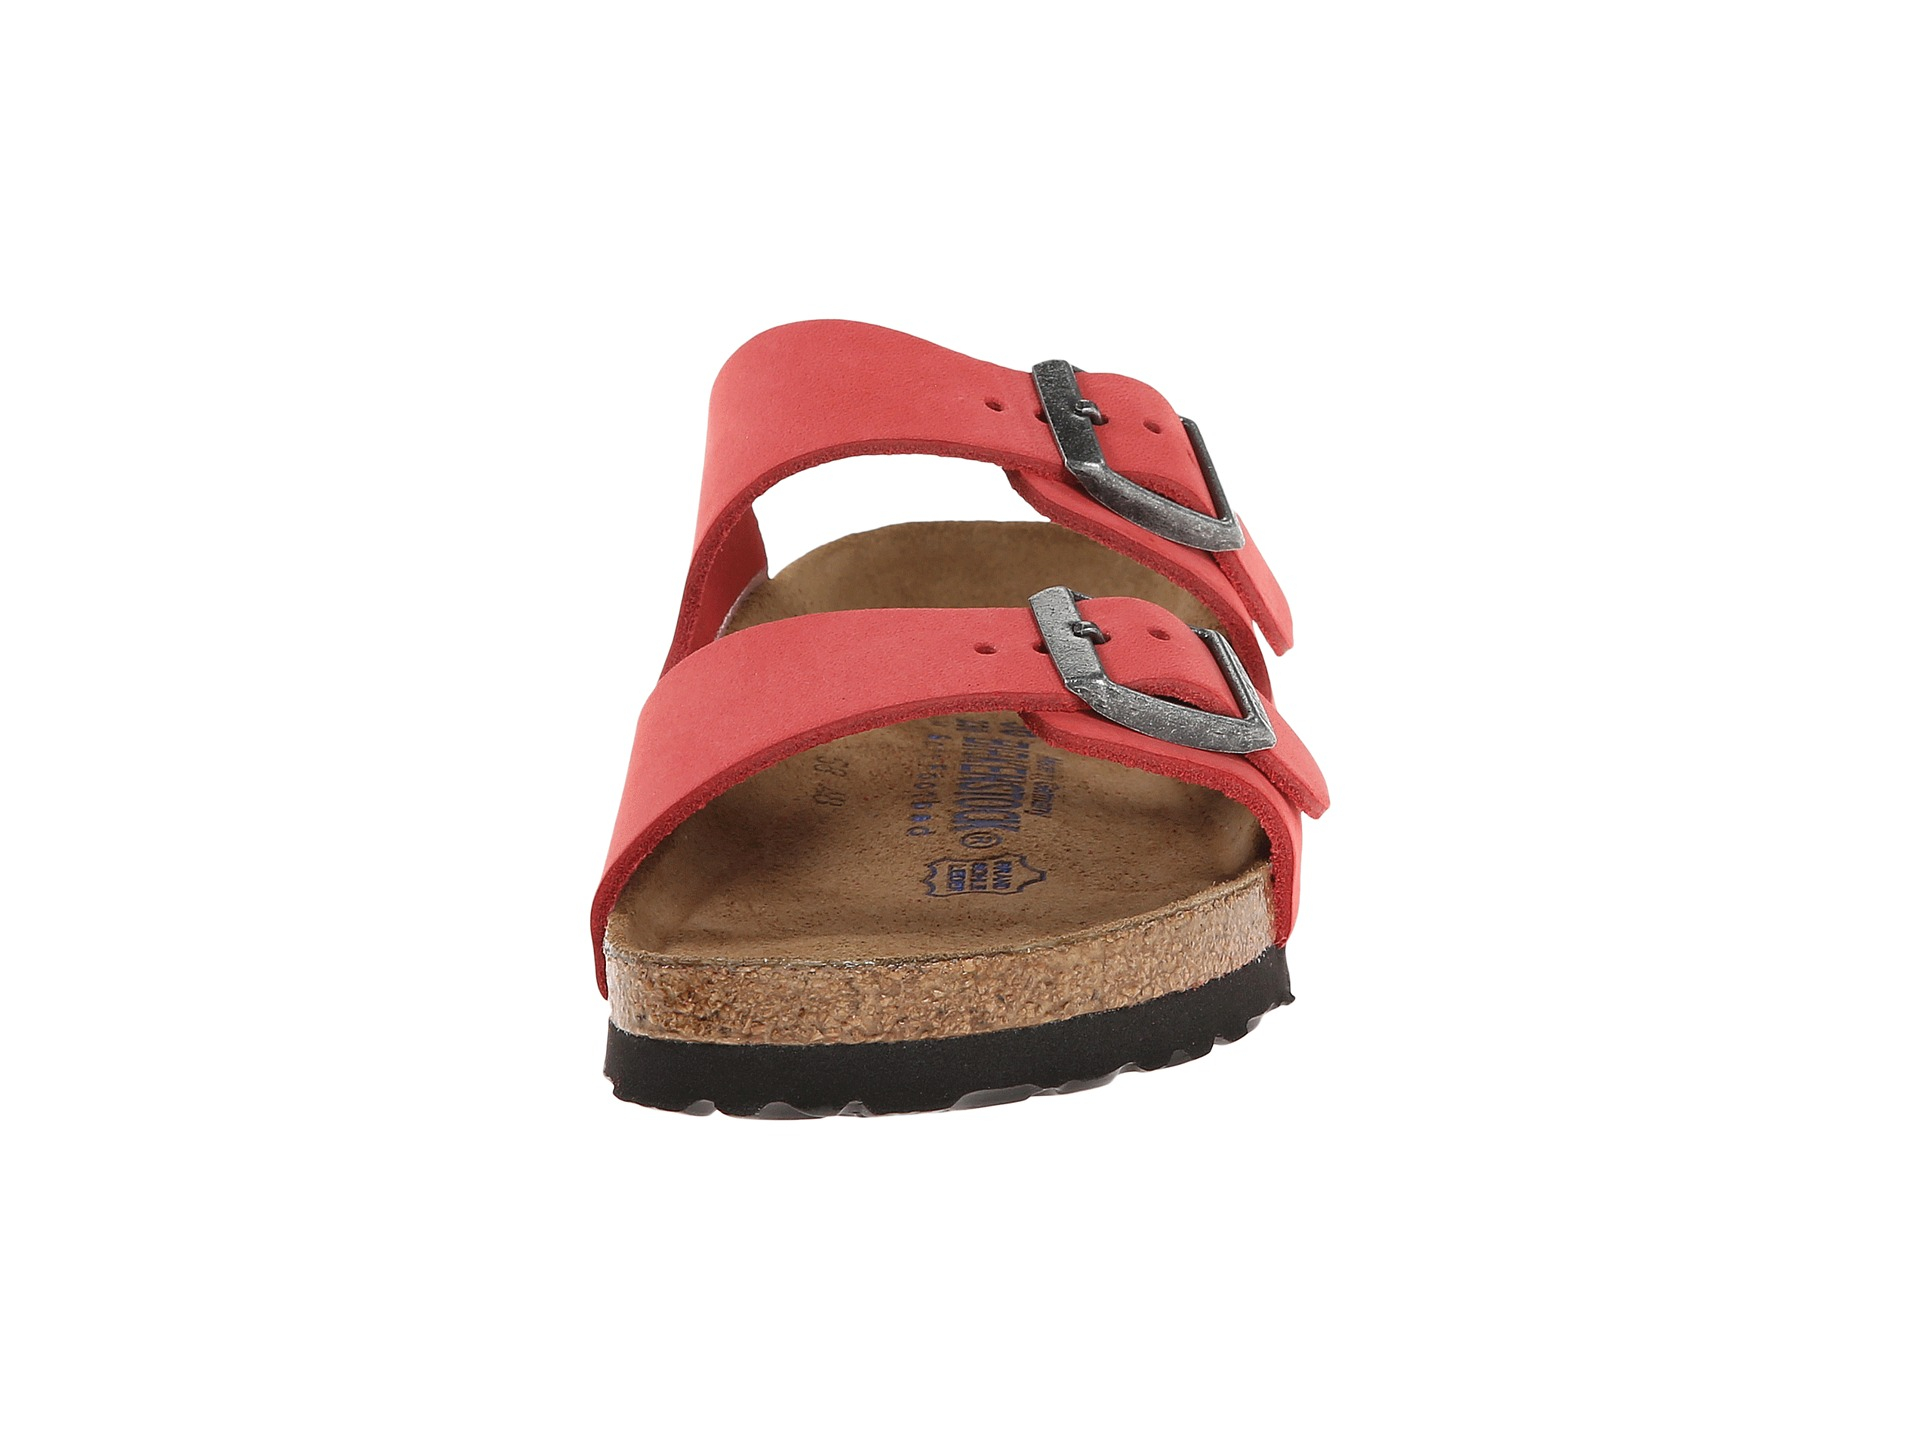 2ef6c0468291 Lyst - Birkenstock Arizona Soft Footbed - Leather (Unisex) in Pink